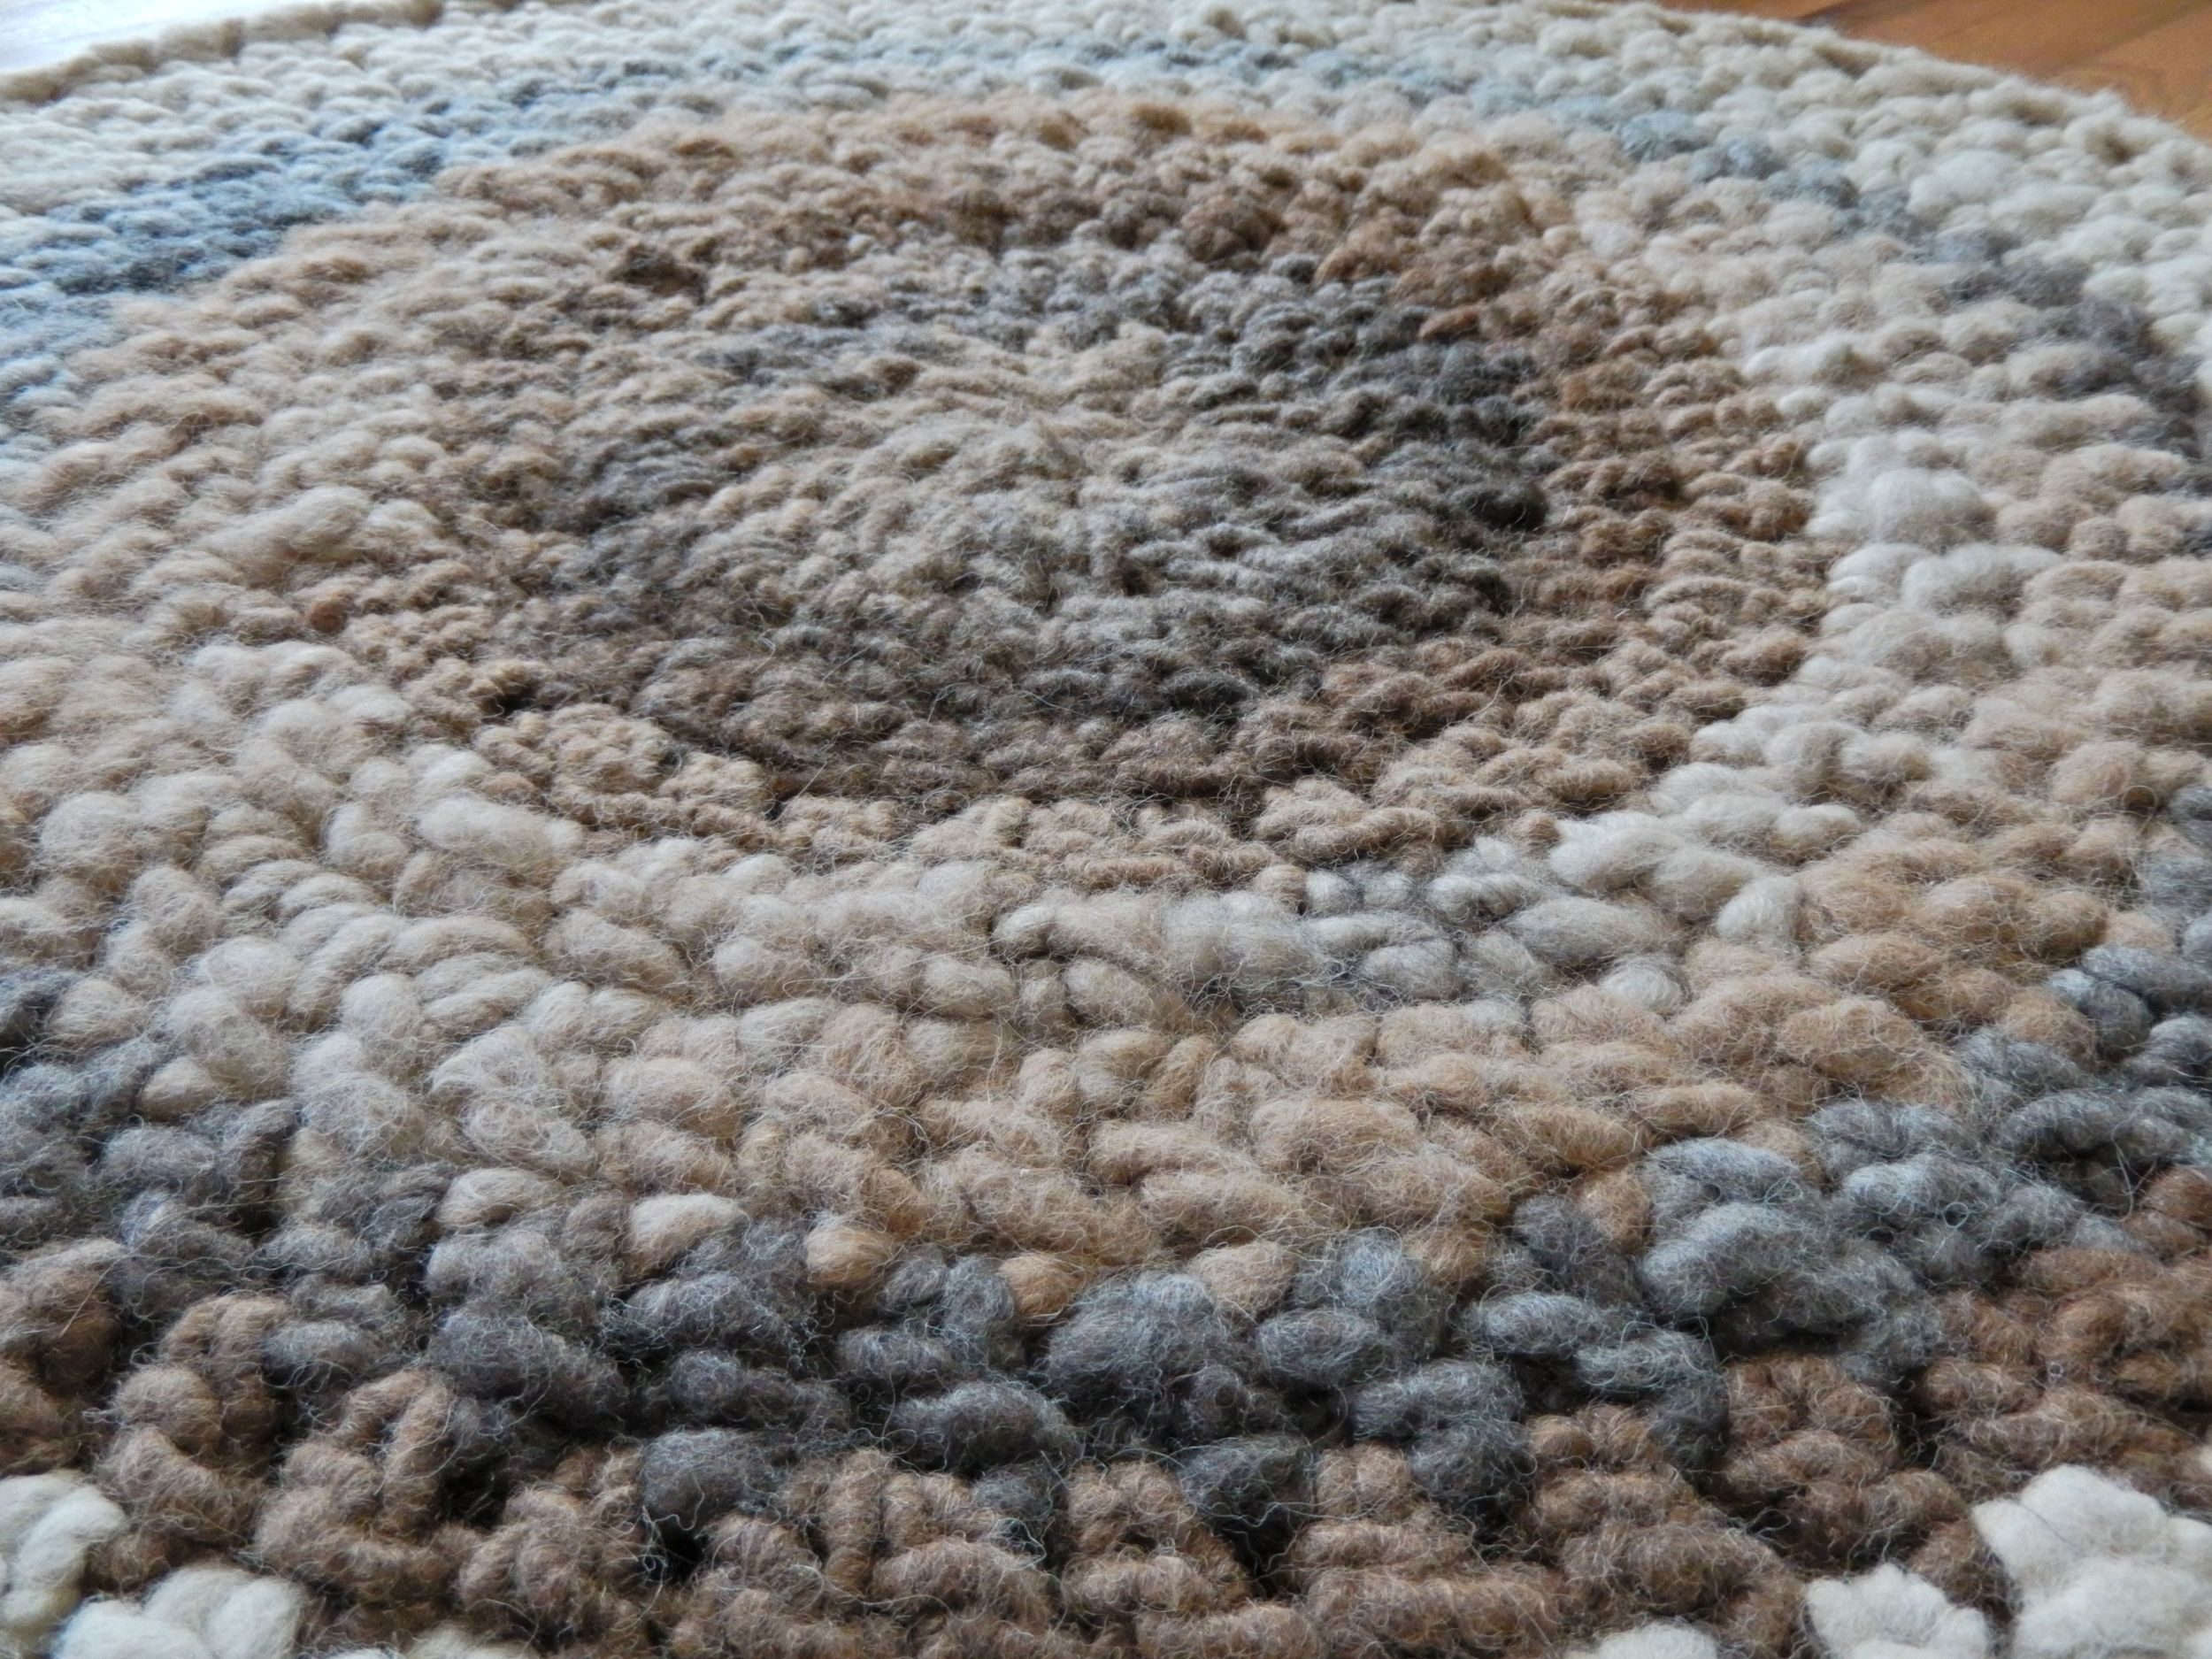 The texture of this crochet stitch creates great loft and springiness in the rug